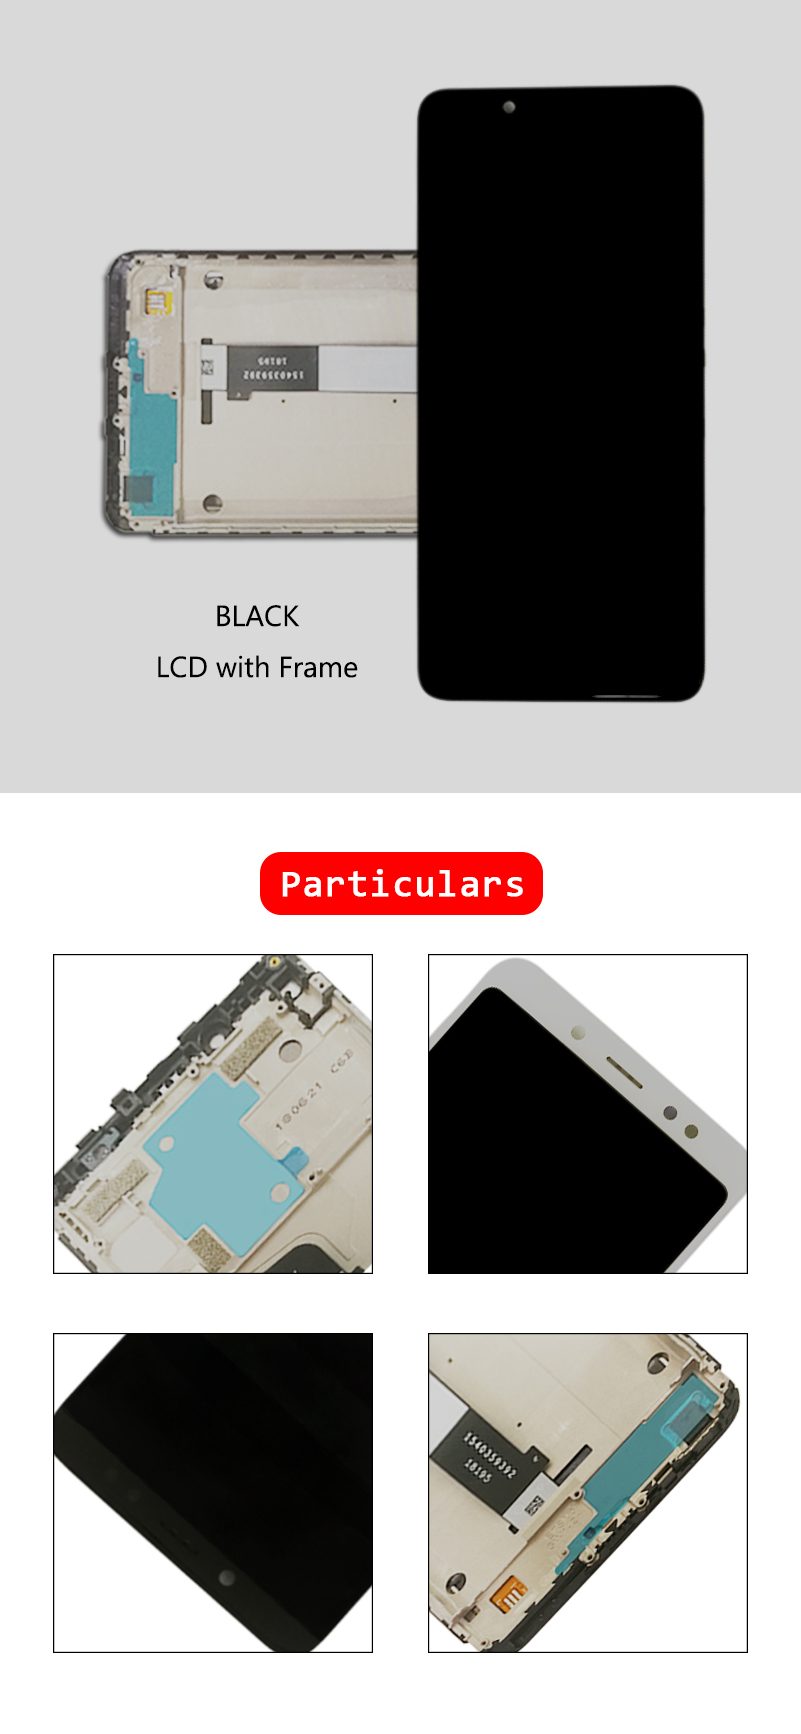 HTB1P4OyazzuK1Rjy0Fpq6yEpFXal 10-Touch AAA Quality LCD+Frame For Xiaomi Redmi Note 5 Pro LCD Display Screen Replacement For Redmi Note 5 LCD Snapdragon 636